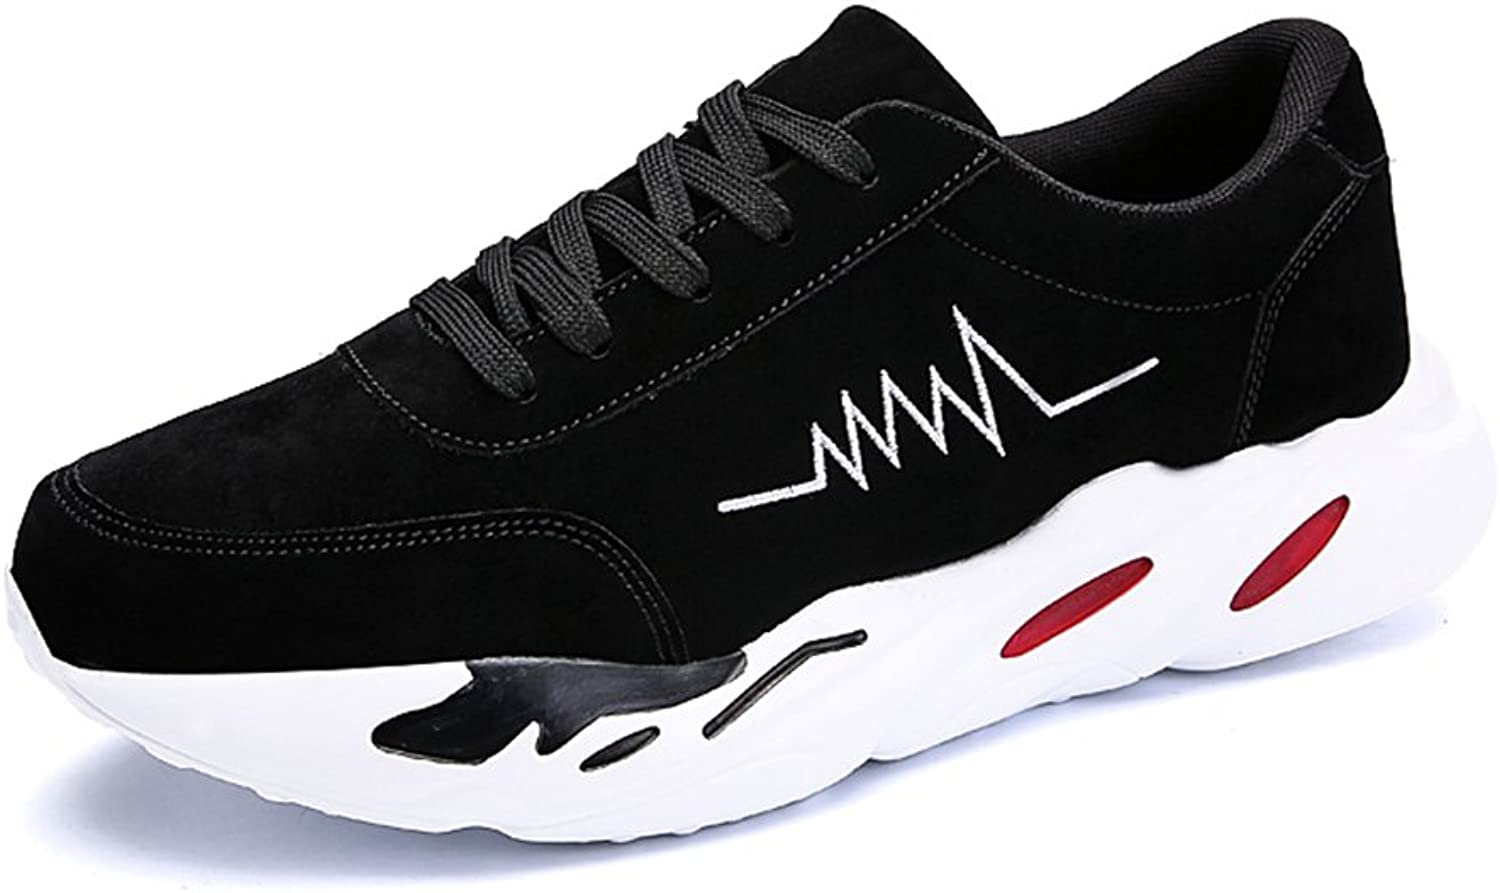 MUMUWU Men's Athletic shoes Lace Up Outdoor Sport shoes Carrier